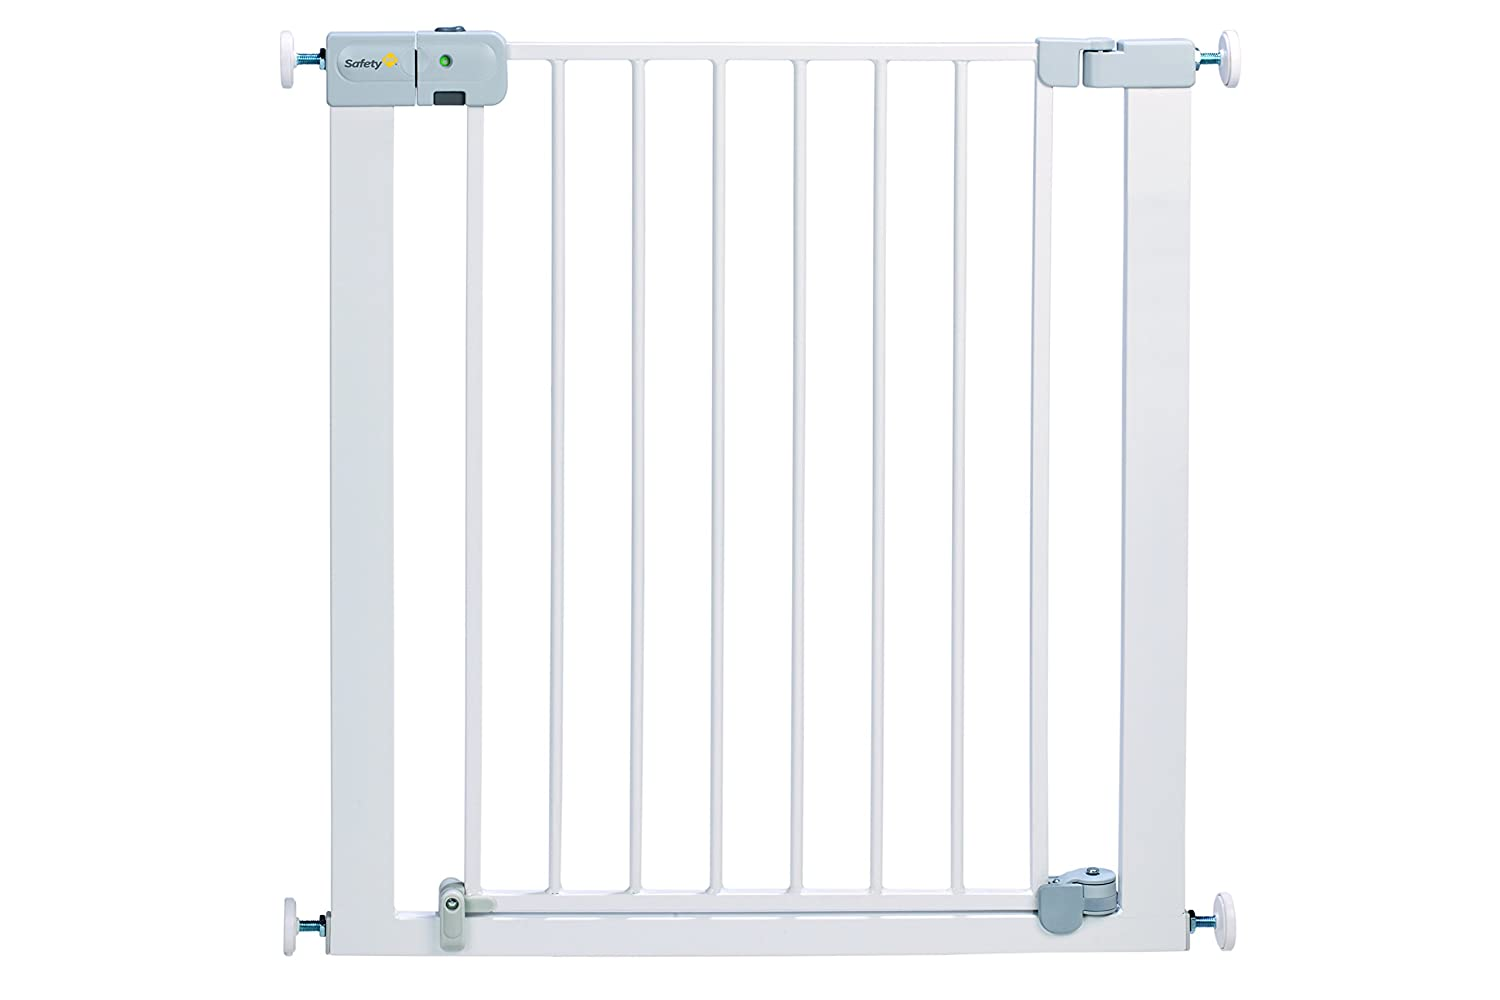 Safety 1st SecurTech Auto Close Metal Gate - White: Amazon.co.uk: Baby